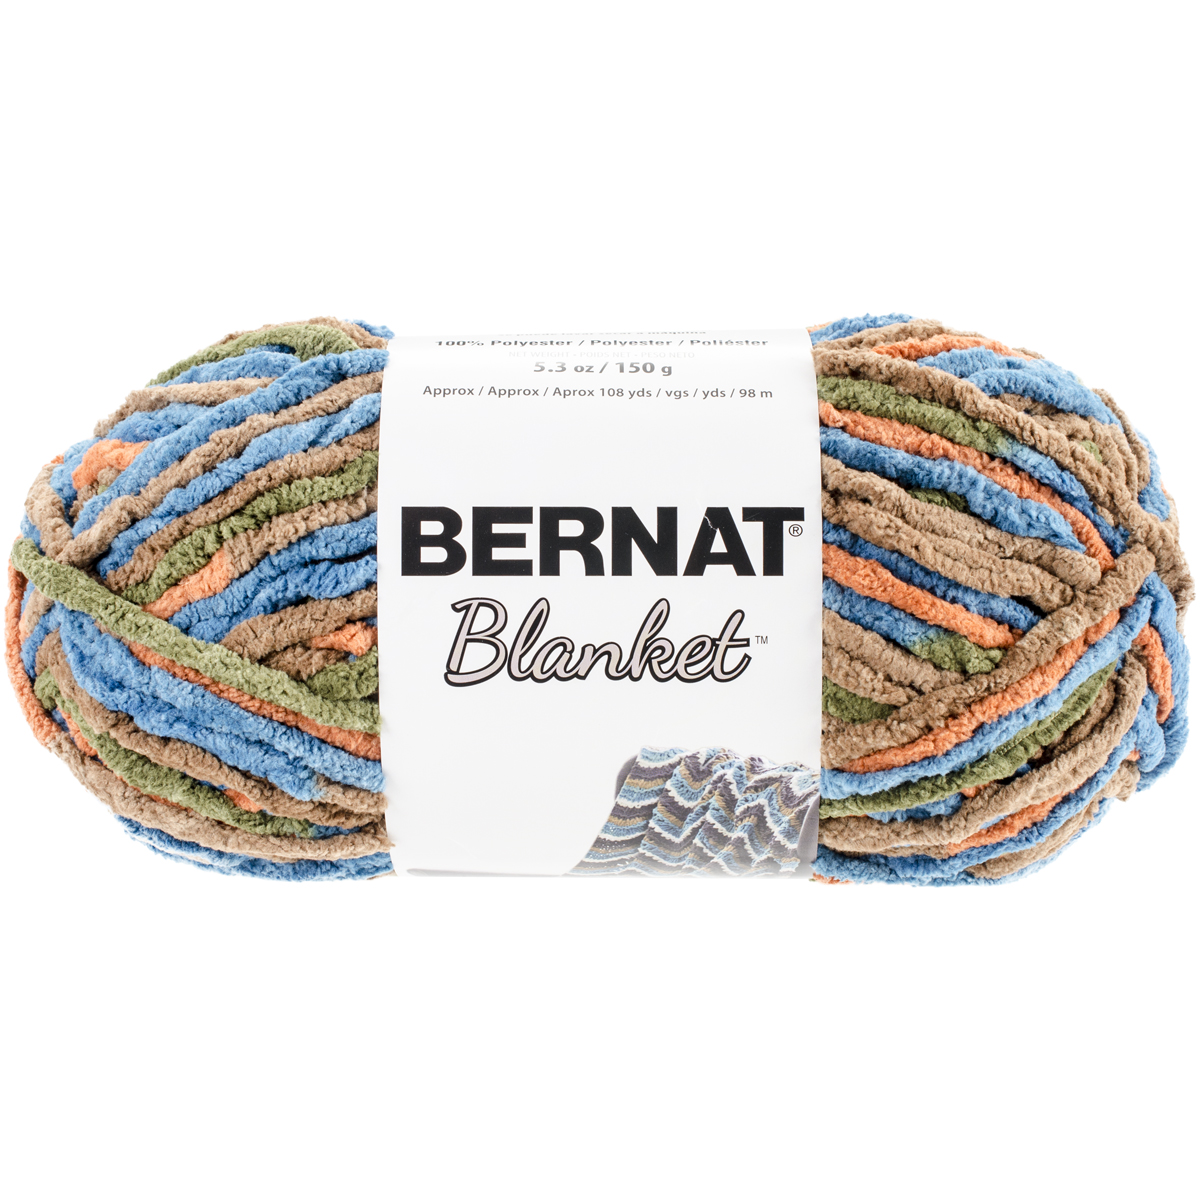 Knitting Warehouse Shipping : Bernat blanket yarn cozy cabin oz